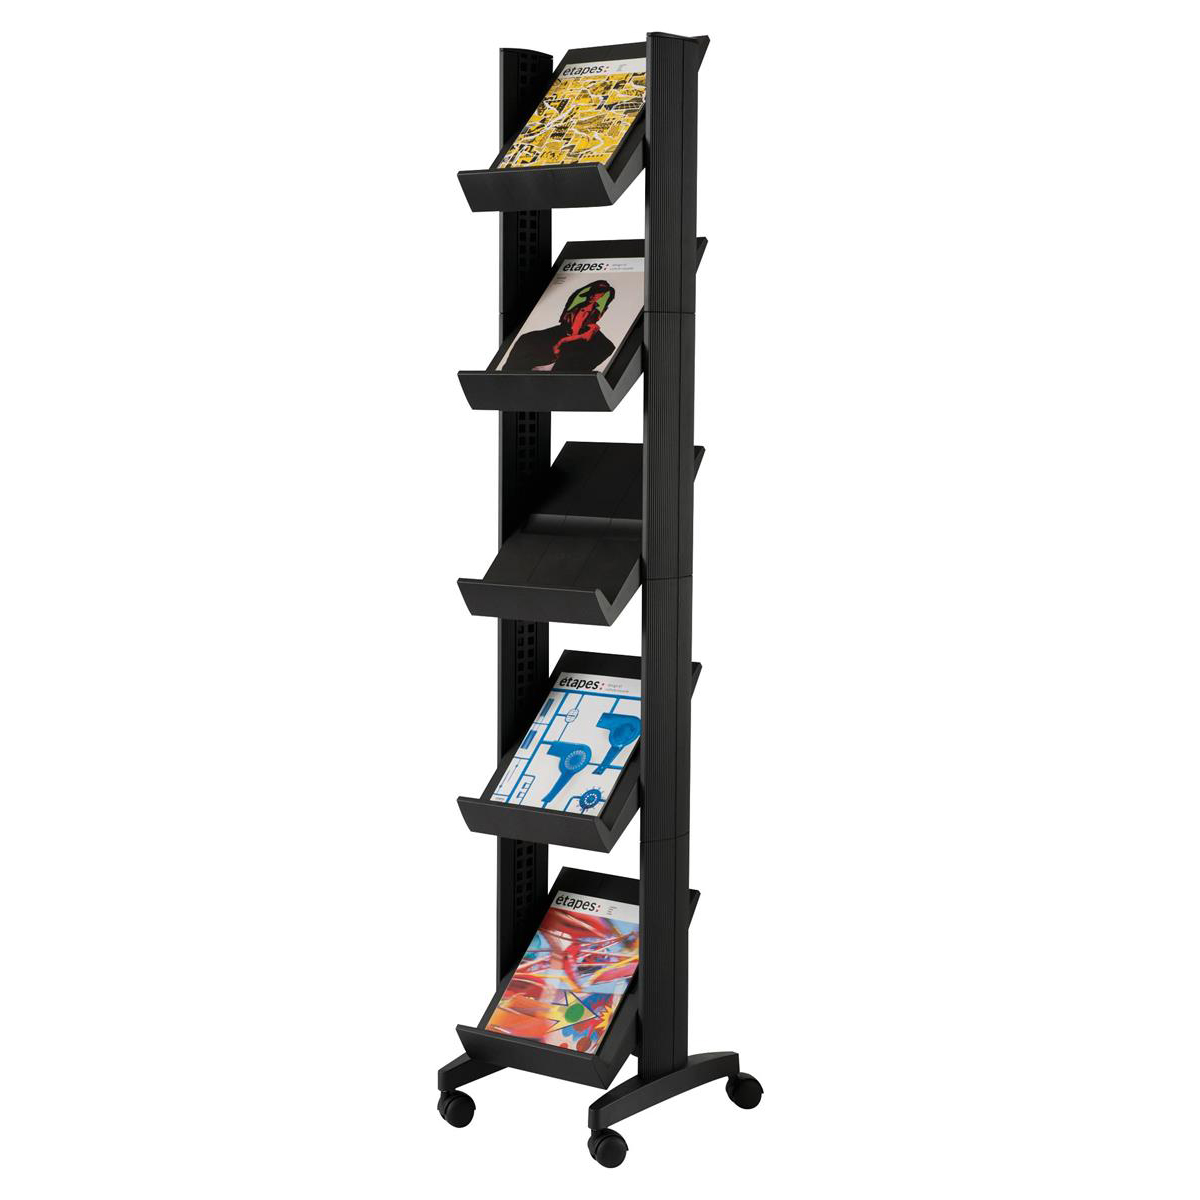 Literature Holders Fast Paper Literature Display Corner Mobile 5 Shelves 35mm Lip Black Ref 259N.01